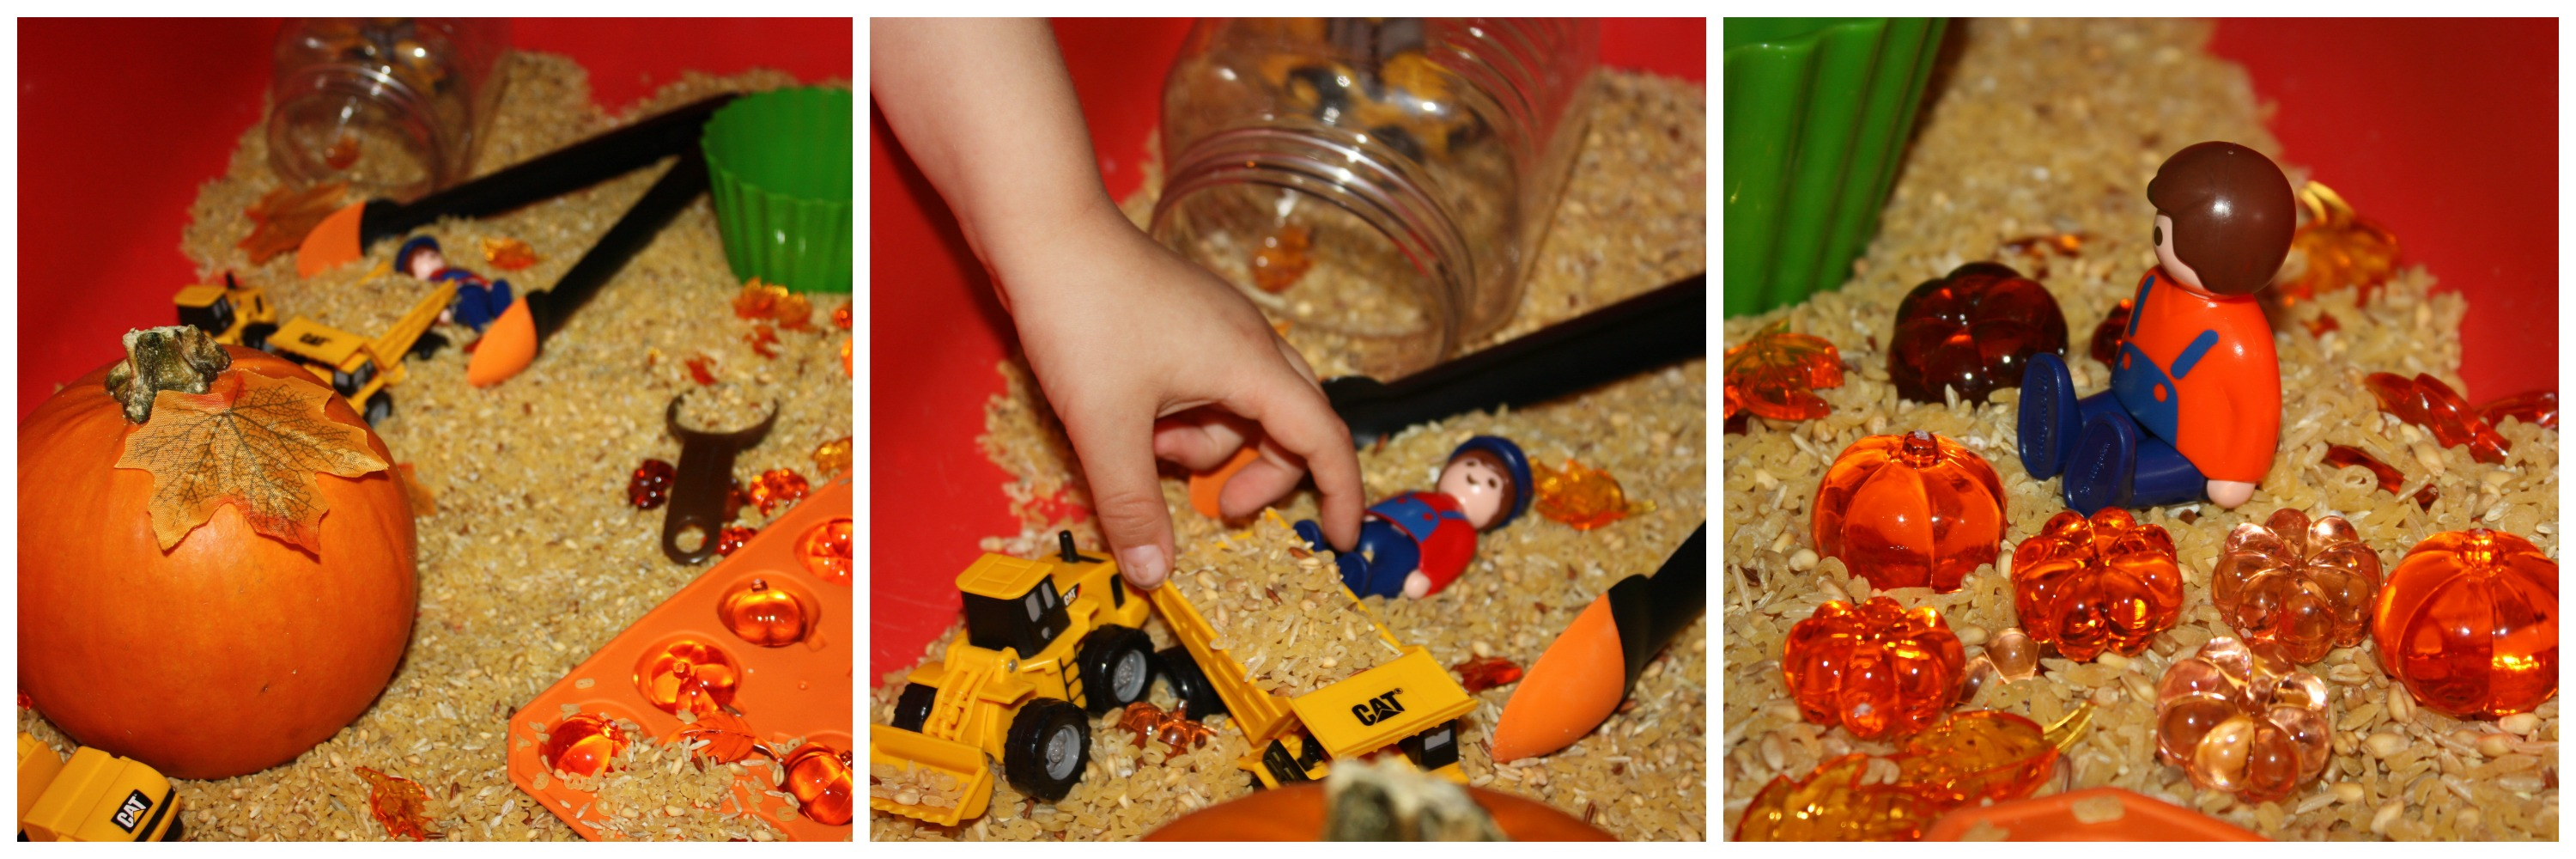 pumpkin-harvest-sensory-bin-with-people-and-vehicles